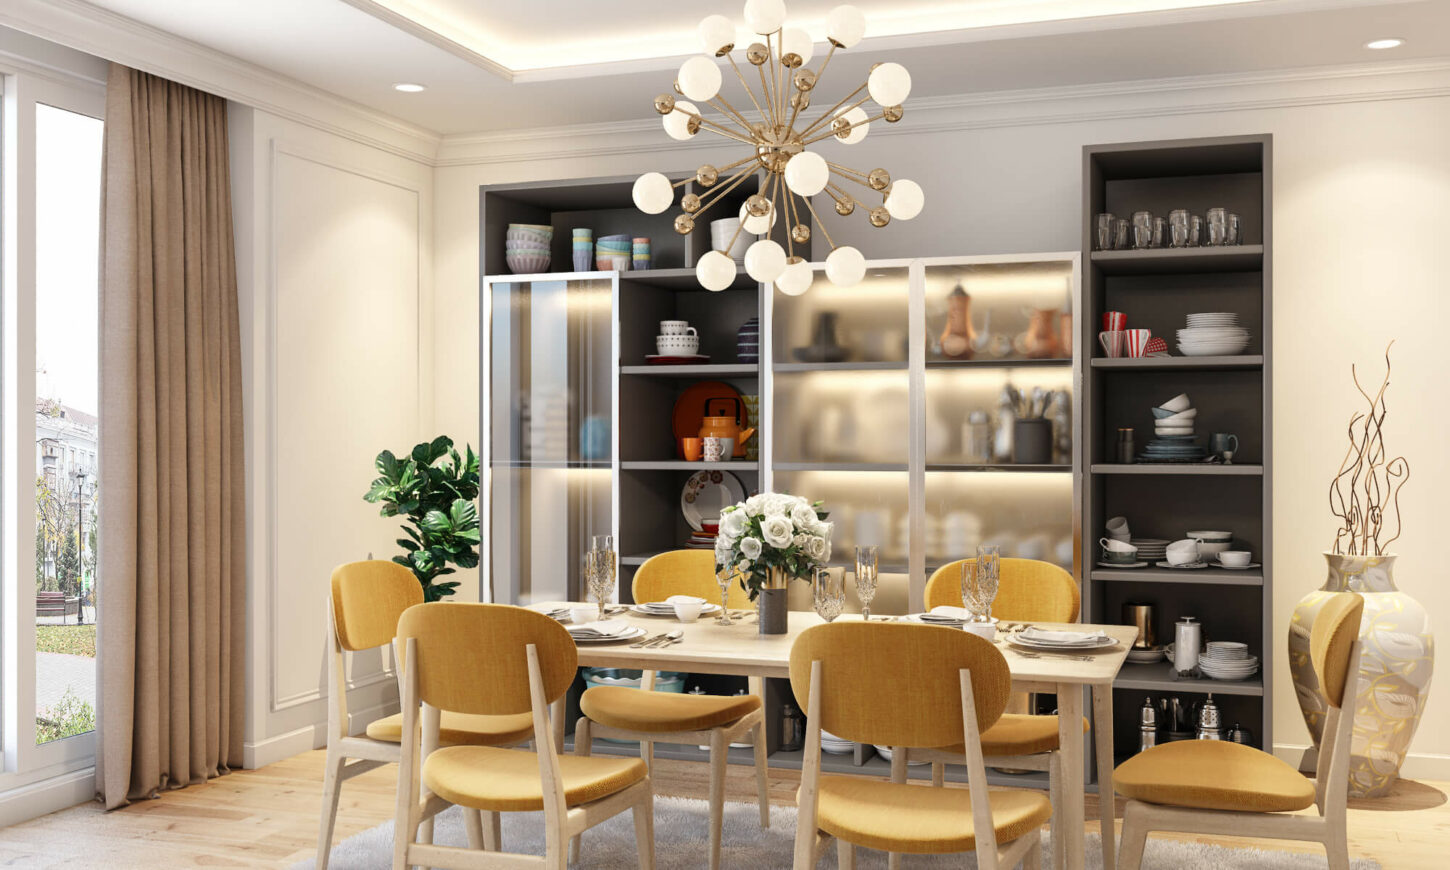 Neo classical style dining room interior design